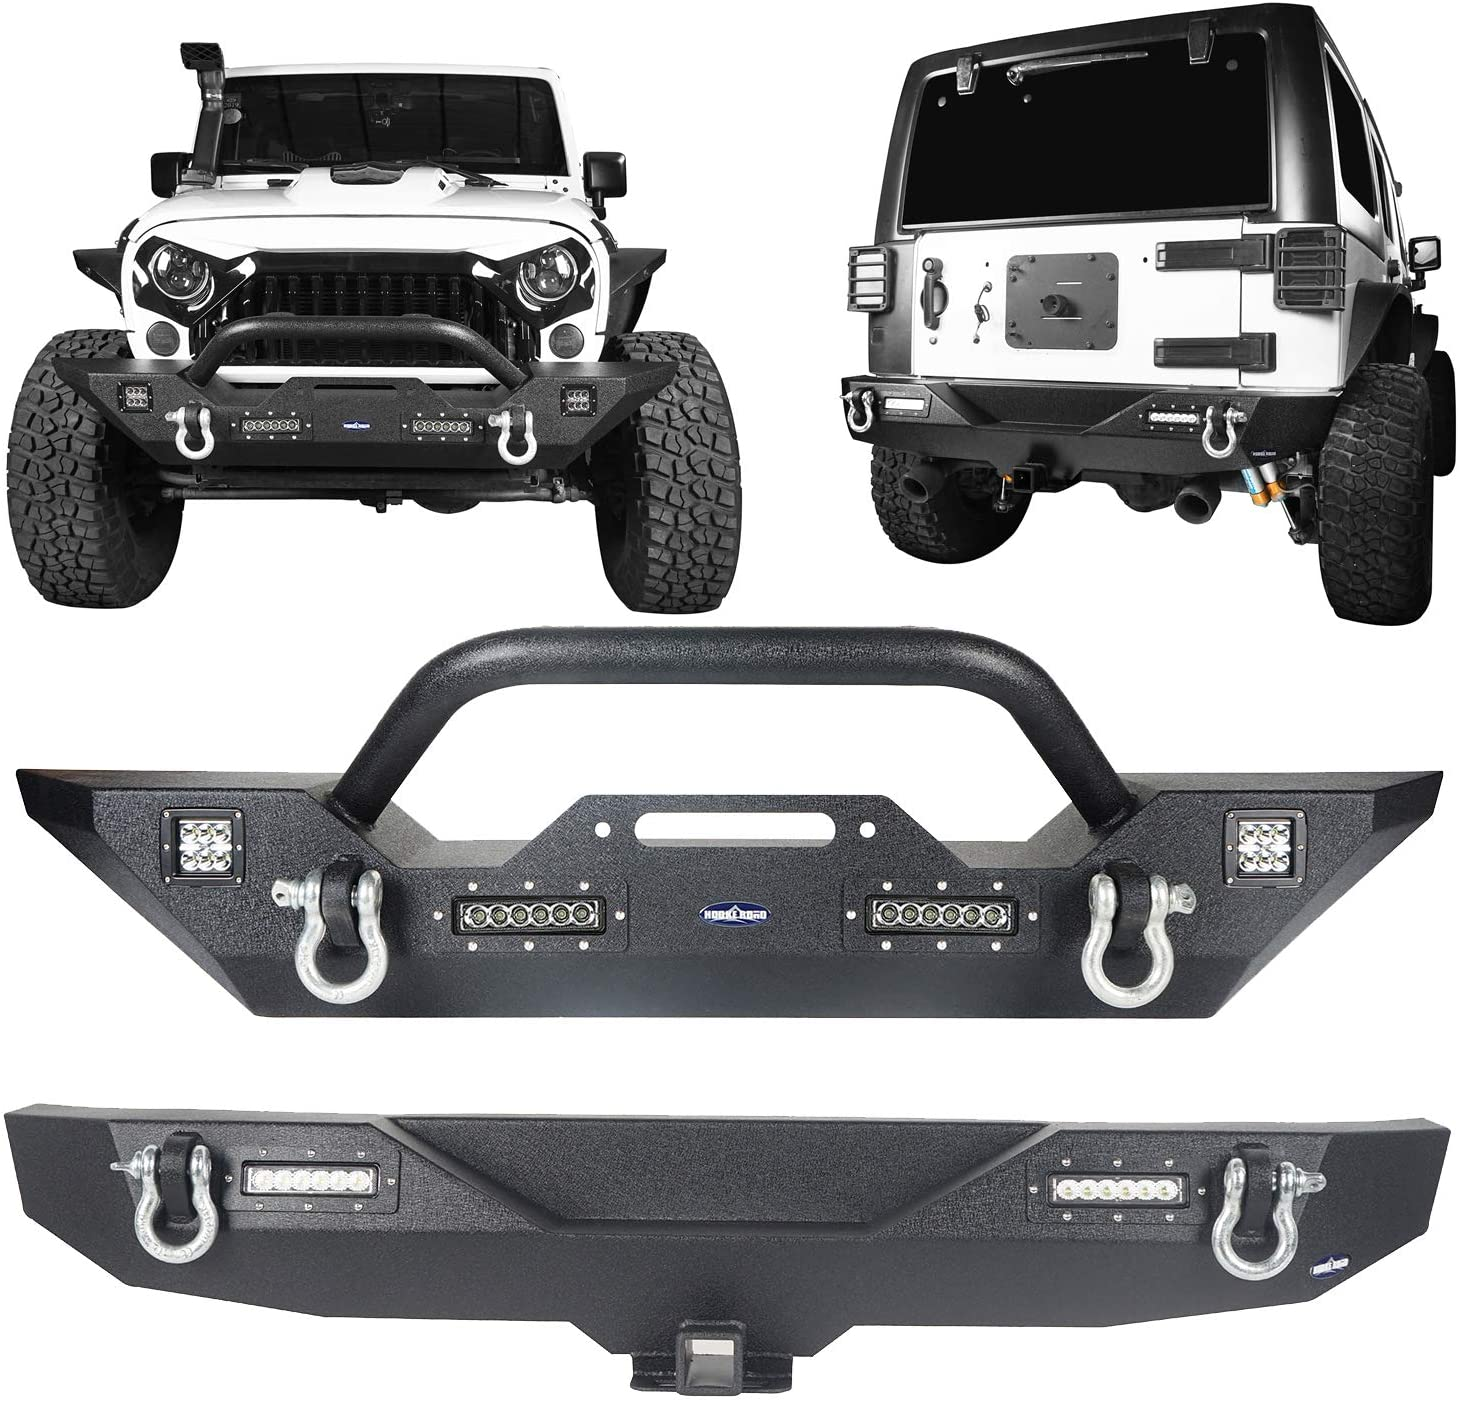 JK Wrangler Bumpers, Front and Rear Combo for 2007-2018 Jeep Wrangler JK Rubicon Sahara Sport X All Models